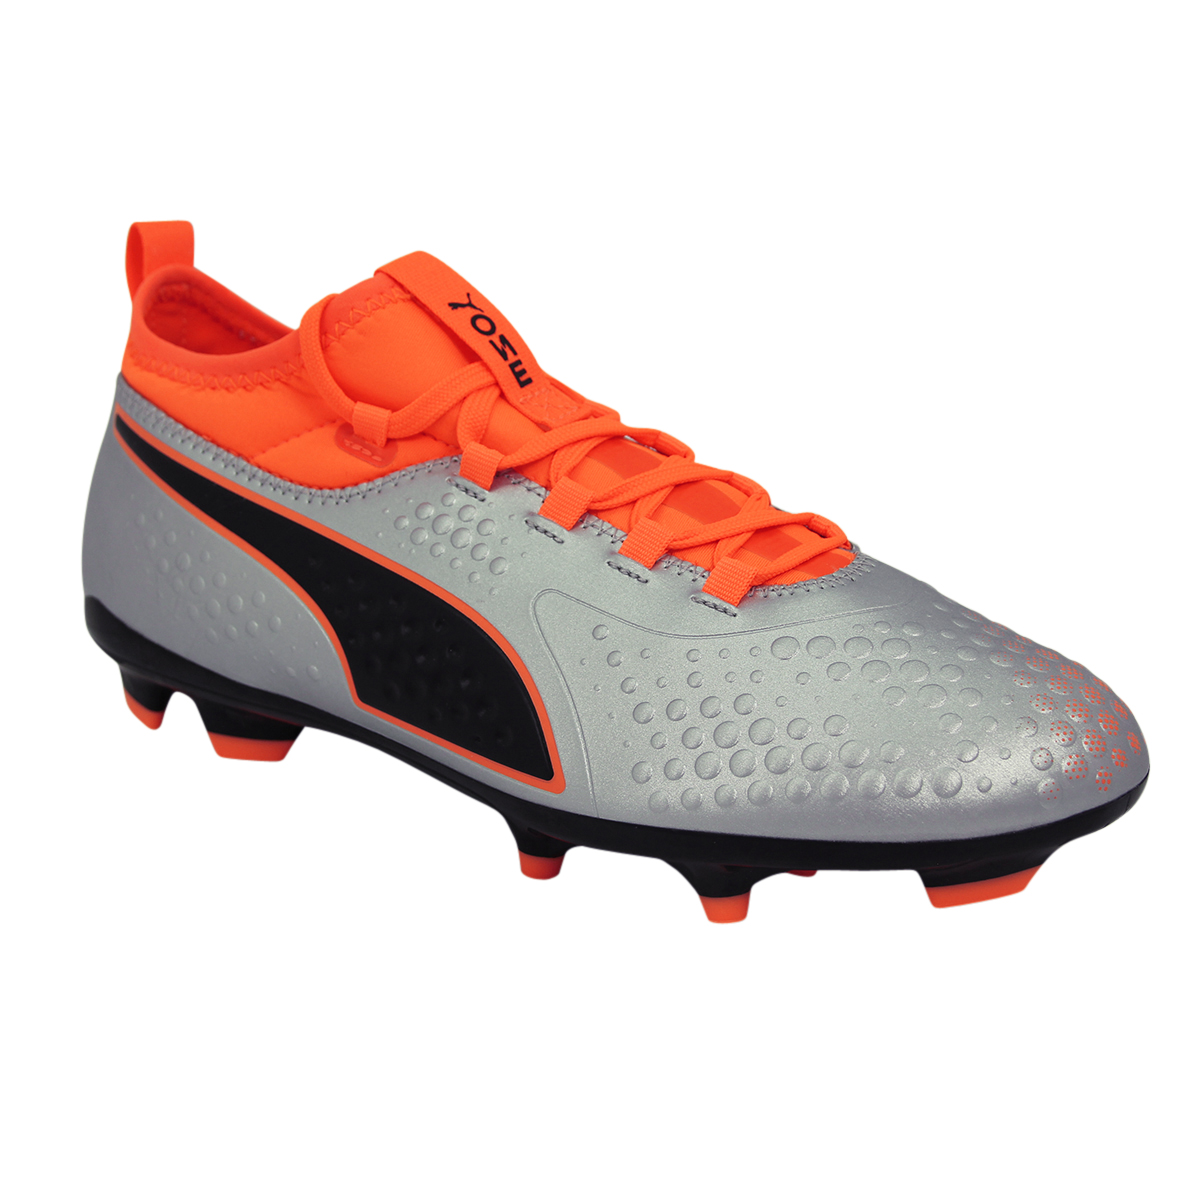 SCARPE CALCIO SINTETICO Puma One 3 Synth Fg EUR 44,90